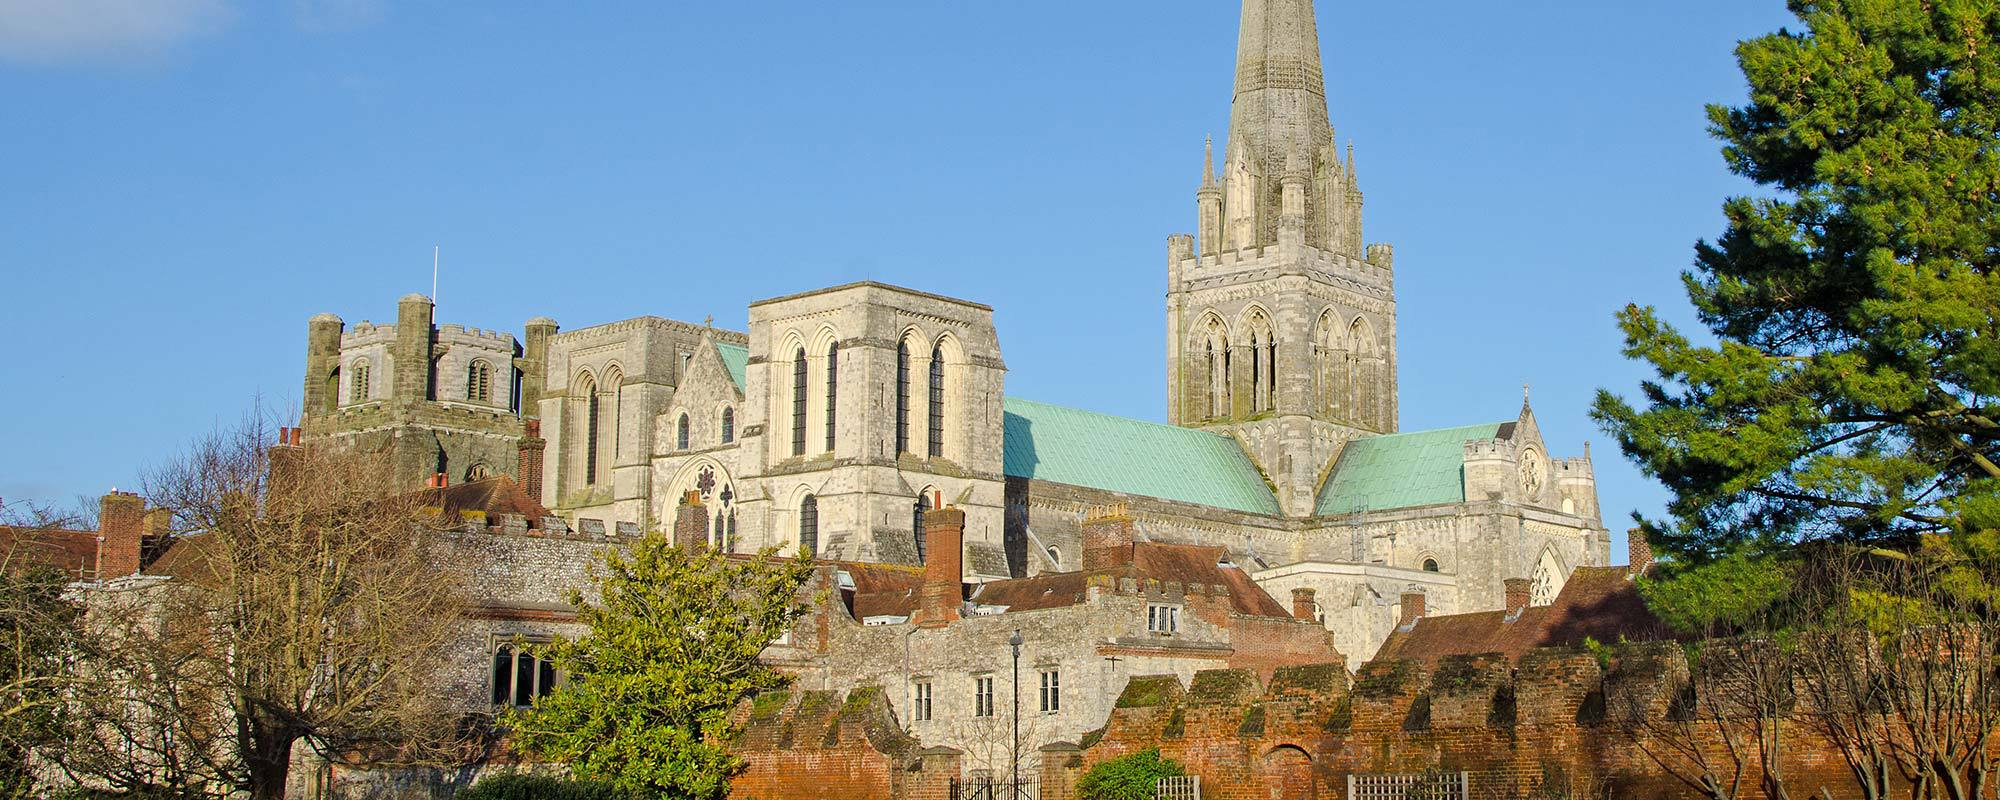 Cathedral and historic buildings in Chichester